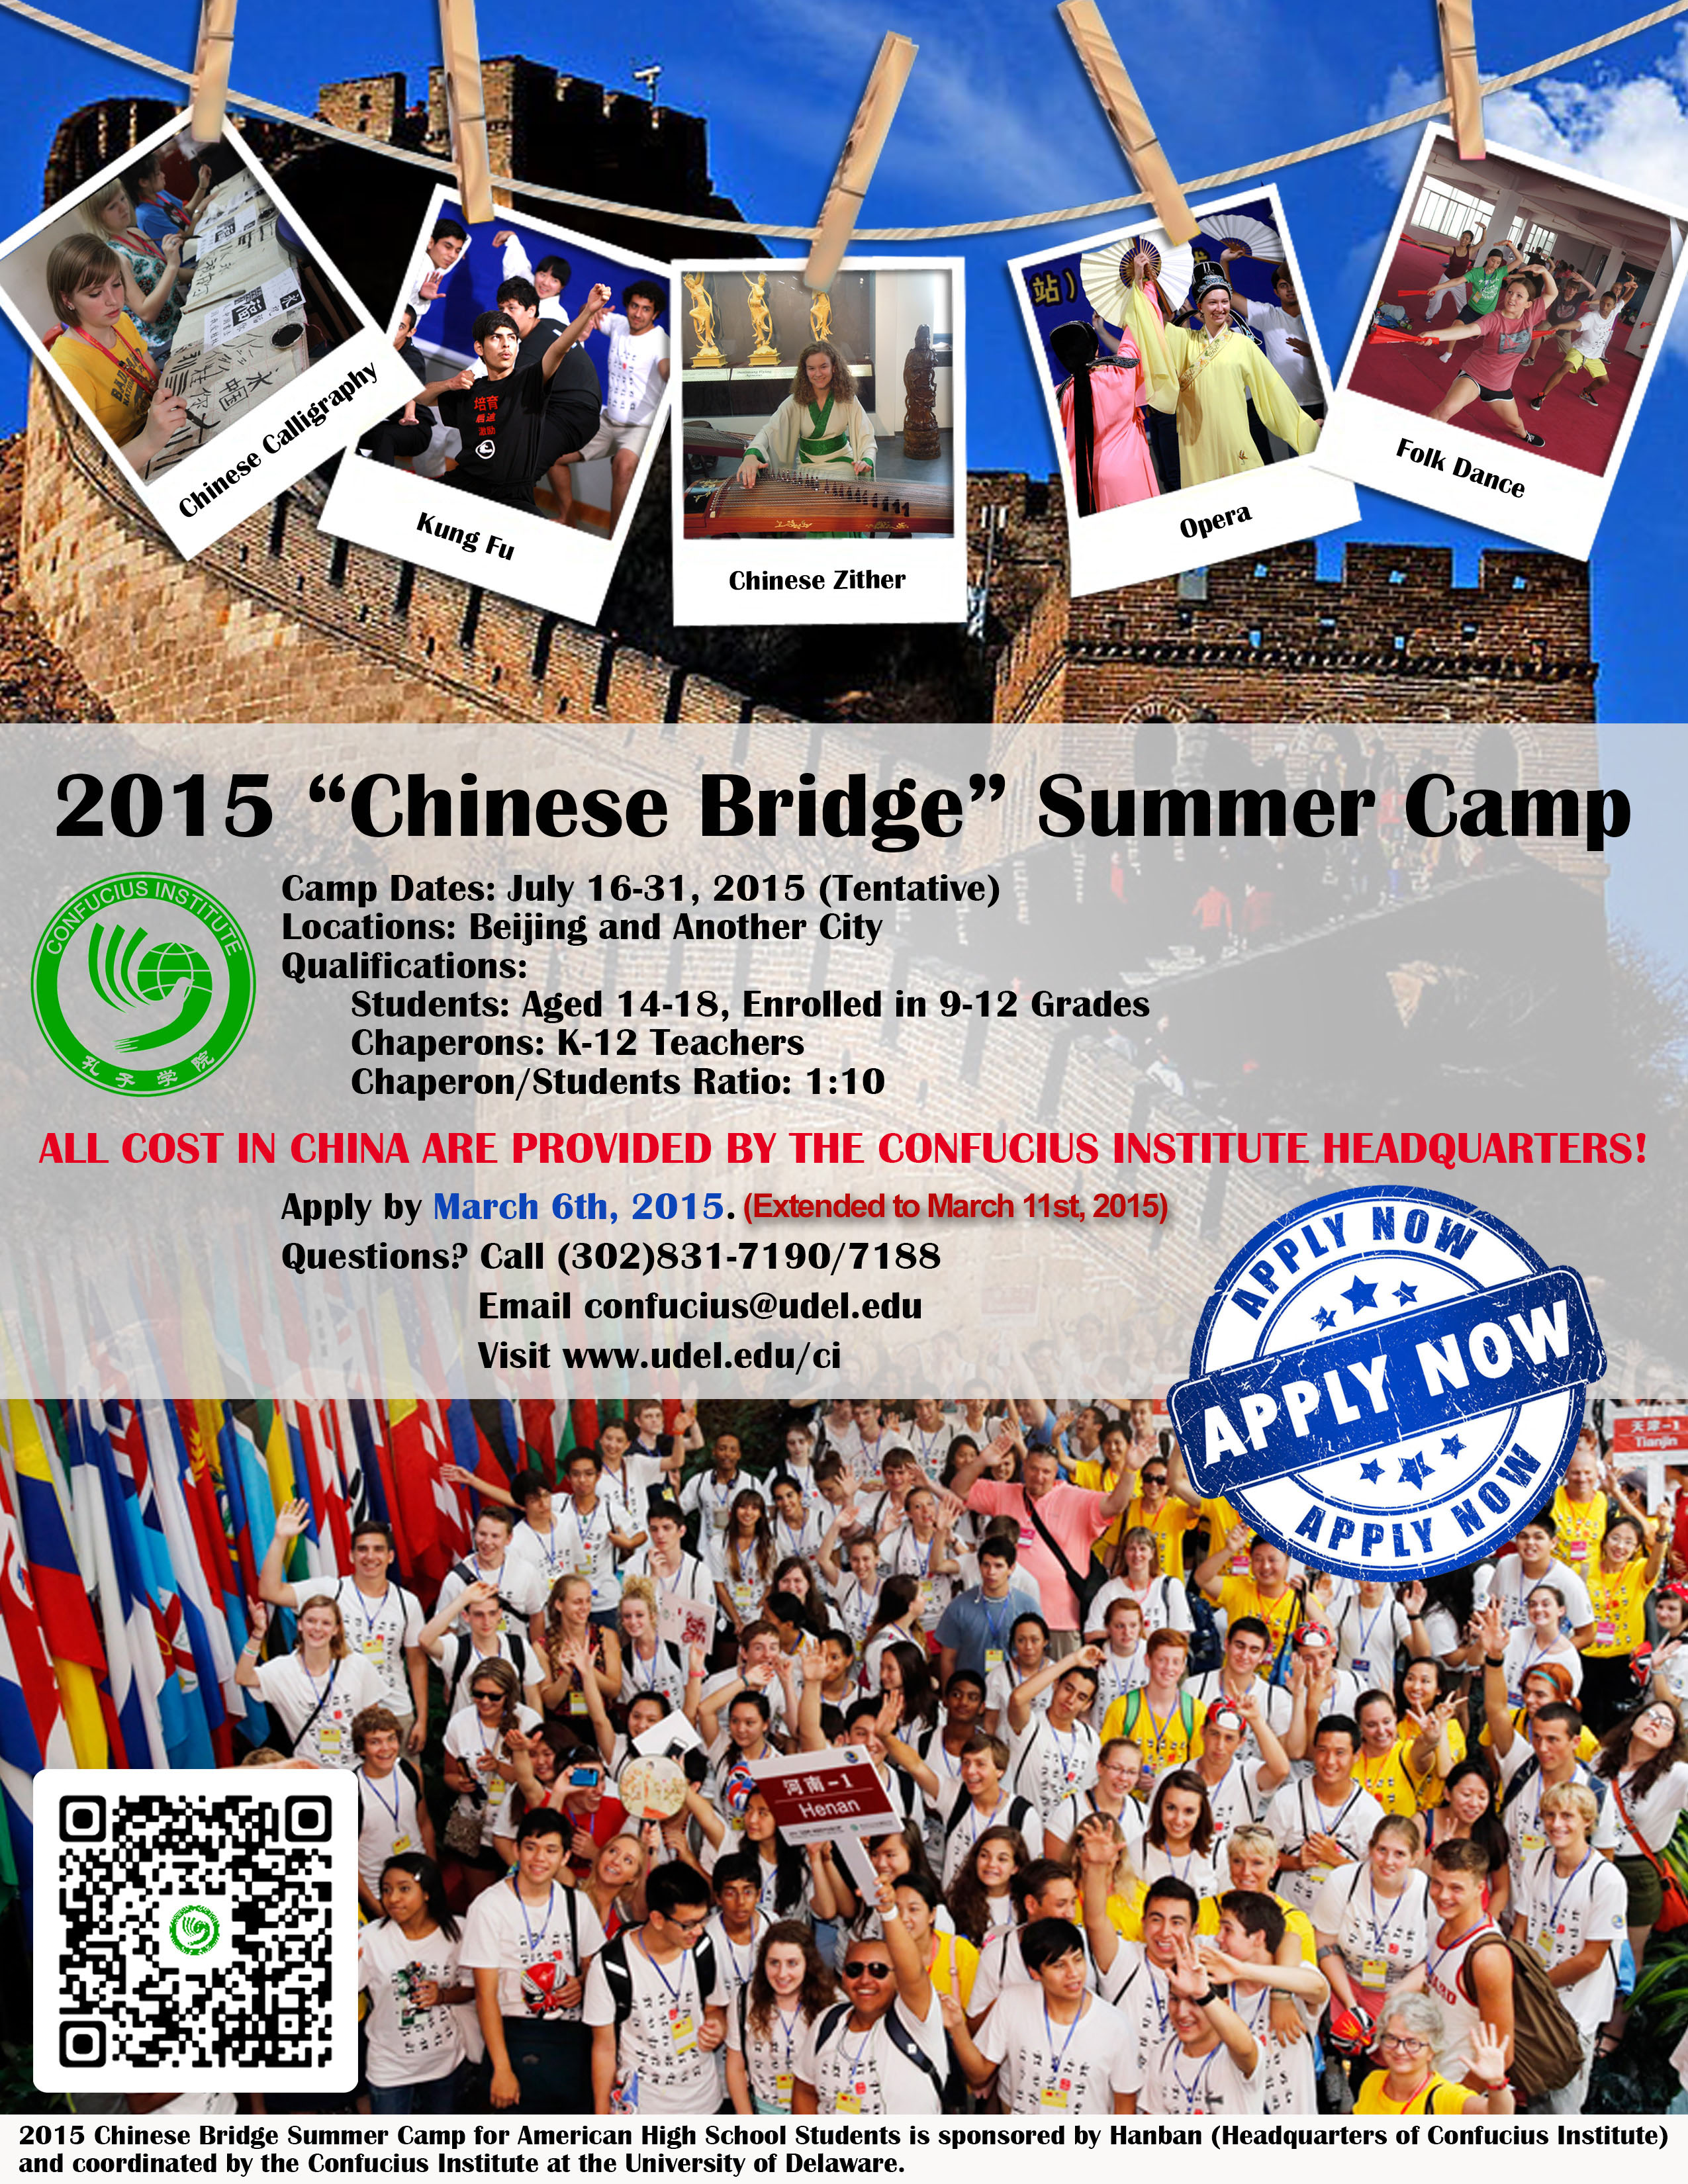 2015 Chinese Bridge Summer Camp Flyer-extended